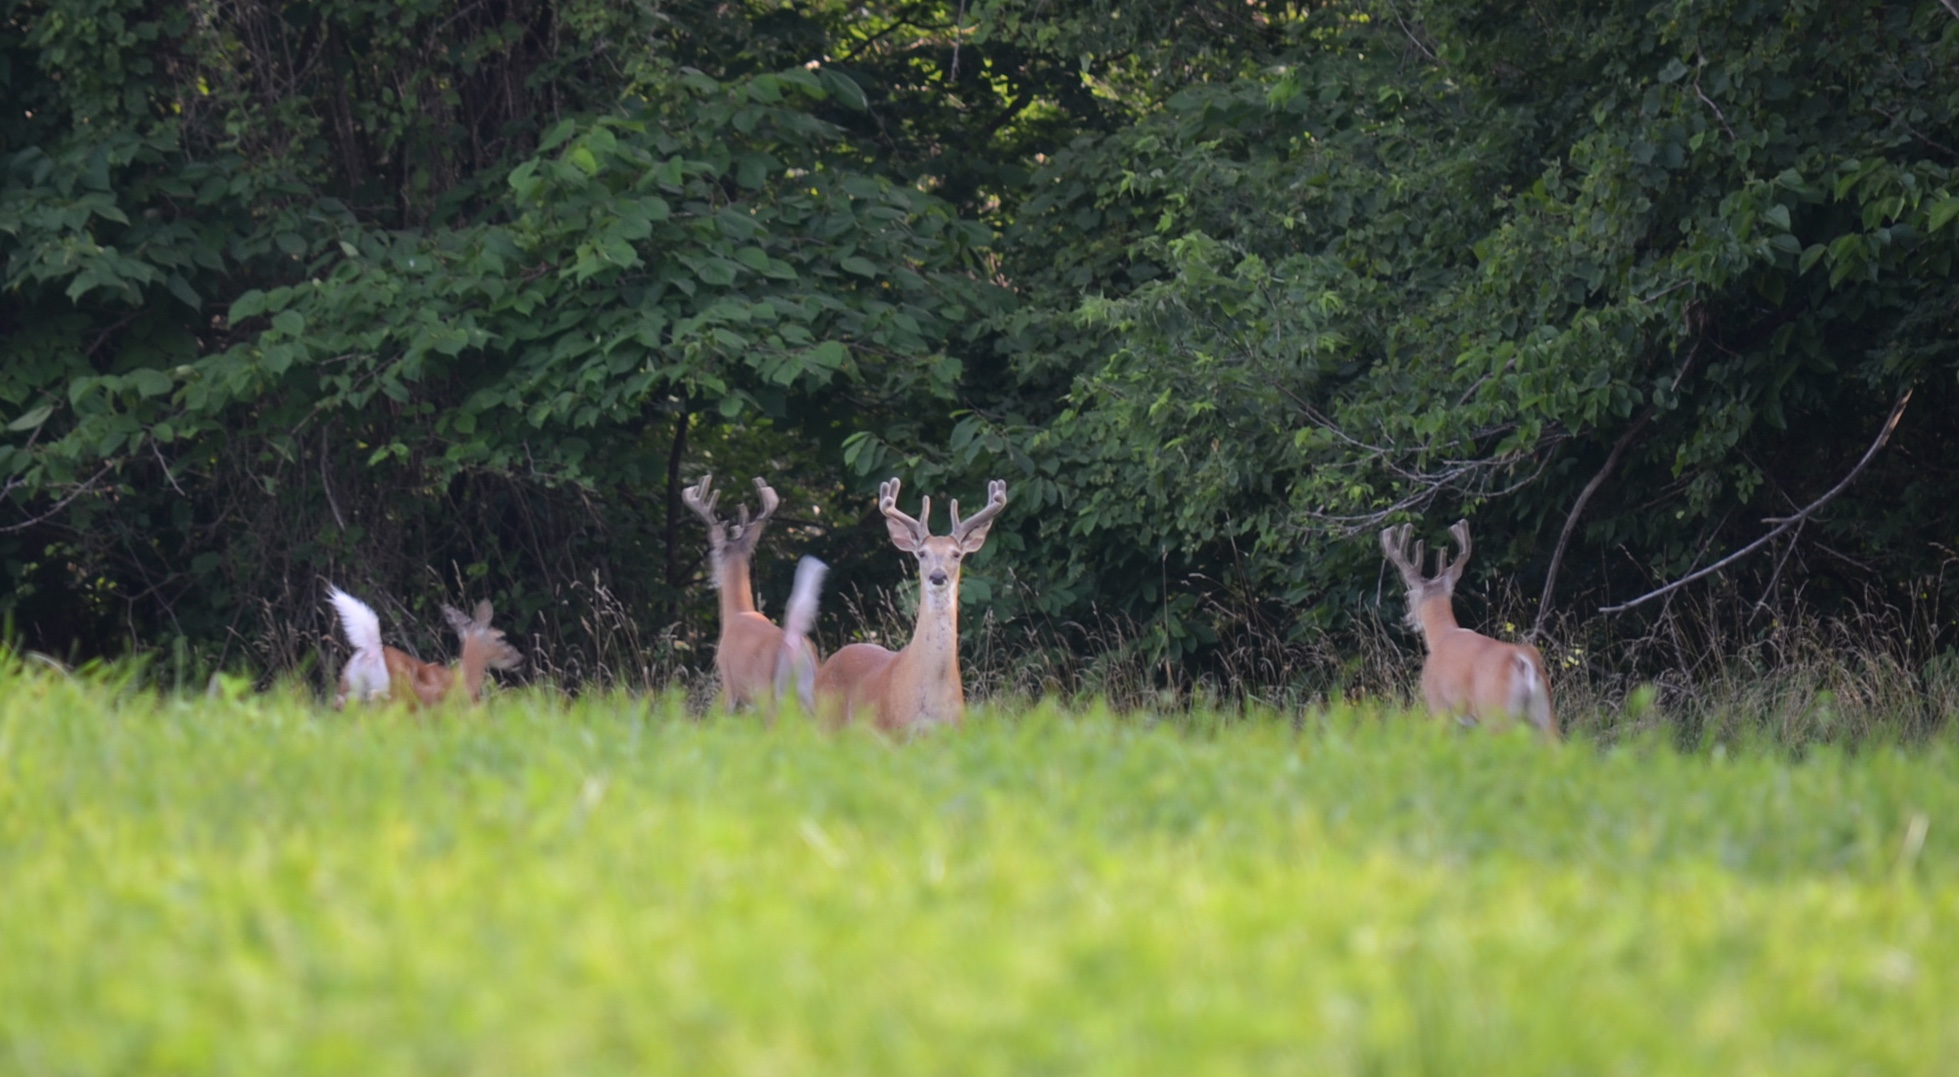 Don't Wait To Find Your Next Deer Hunting Property